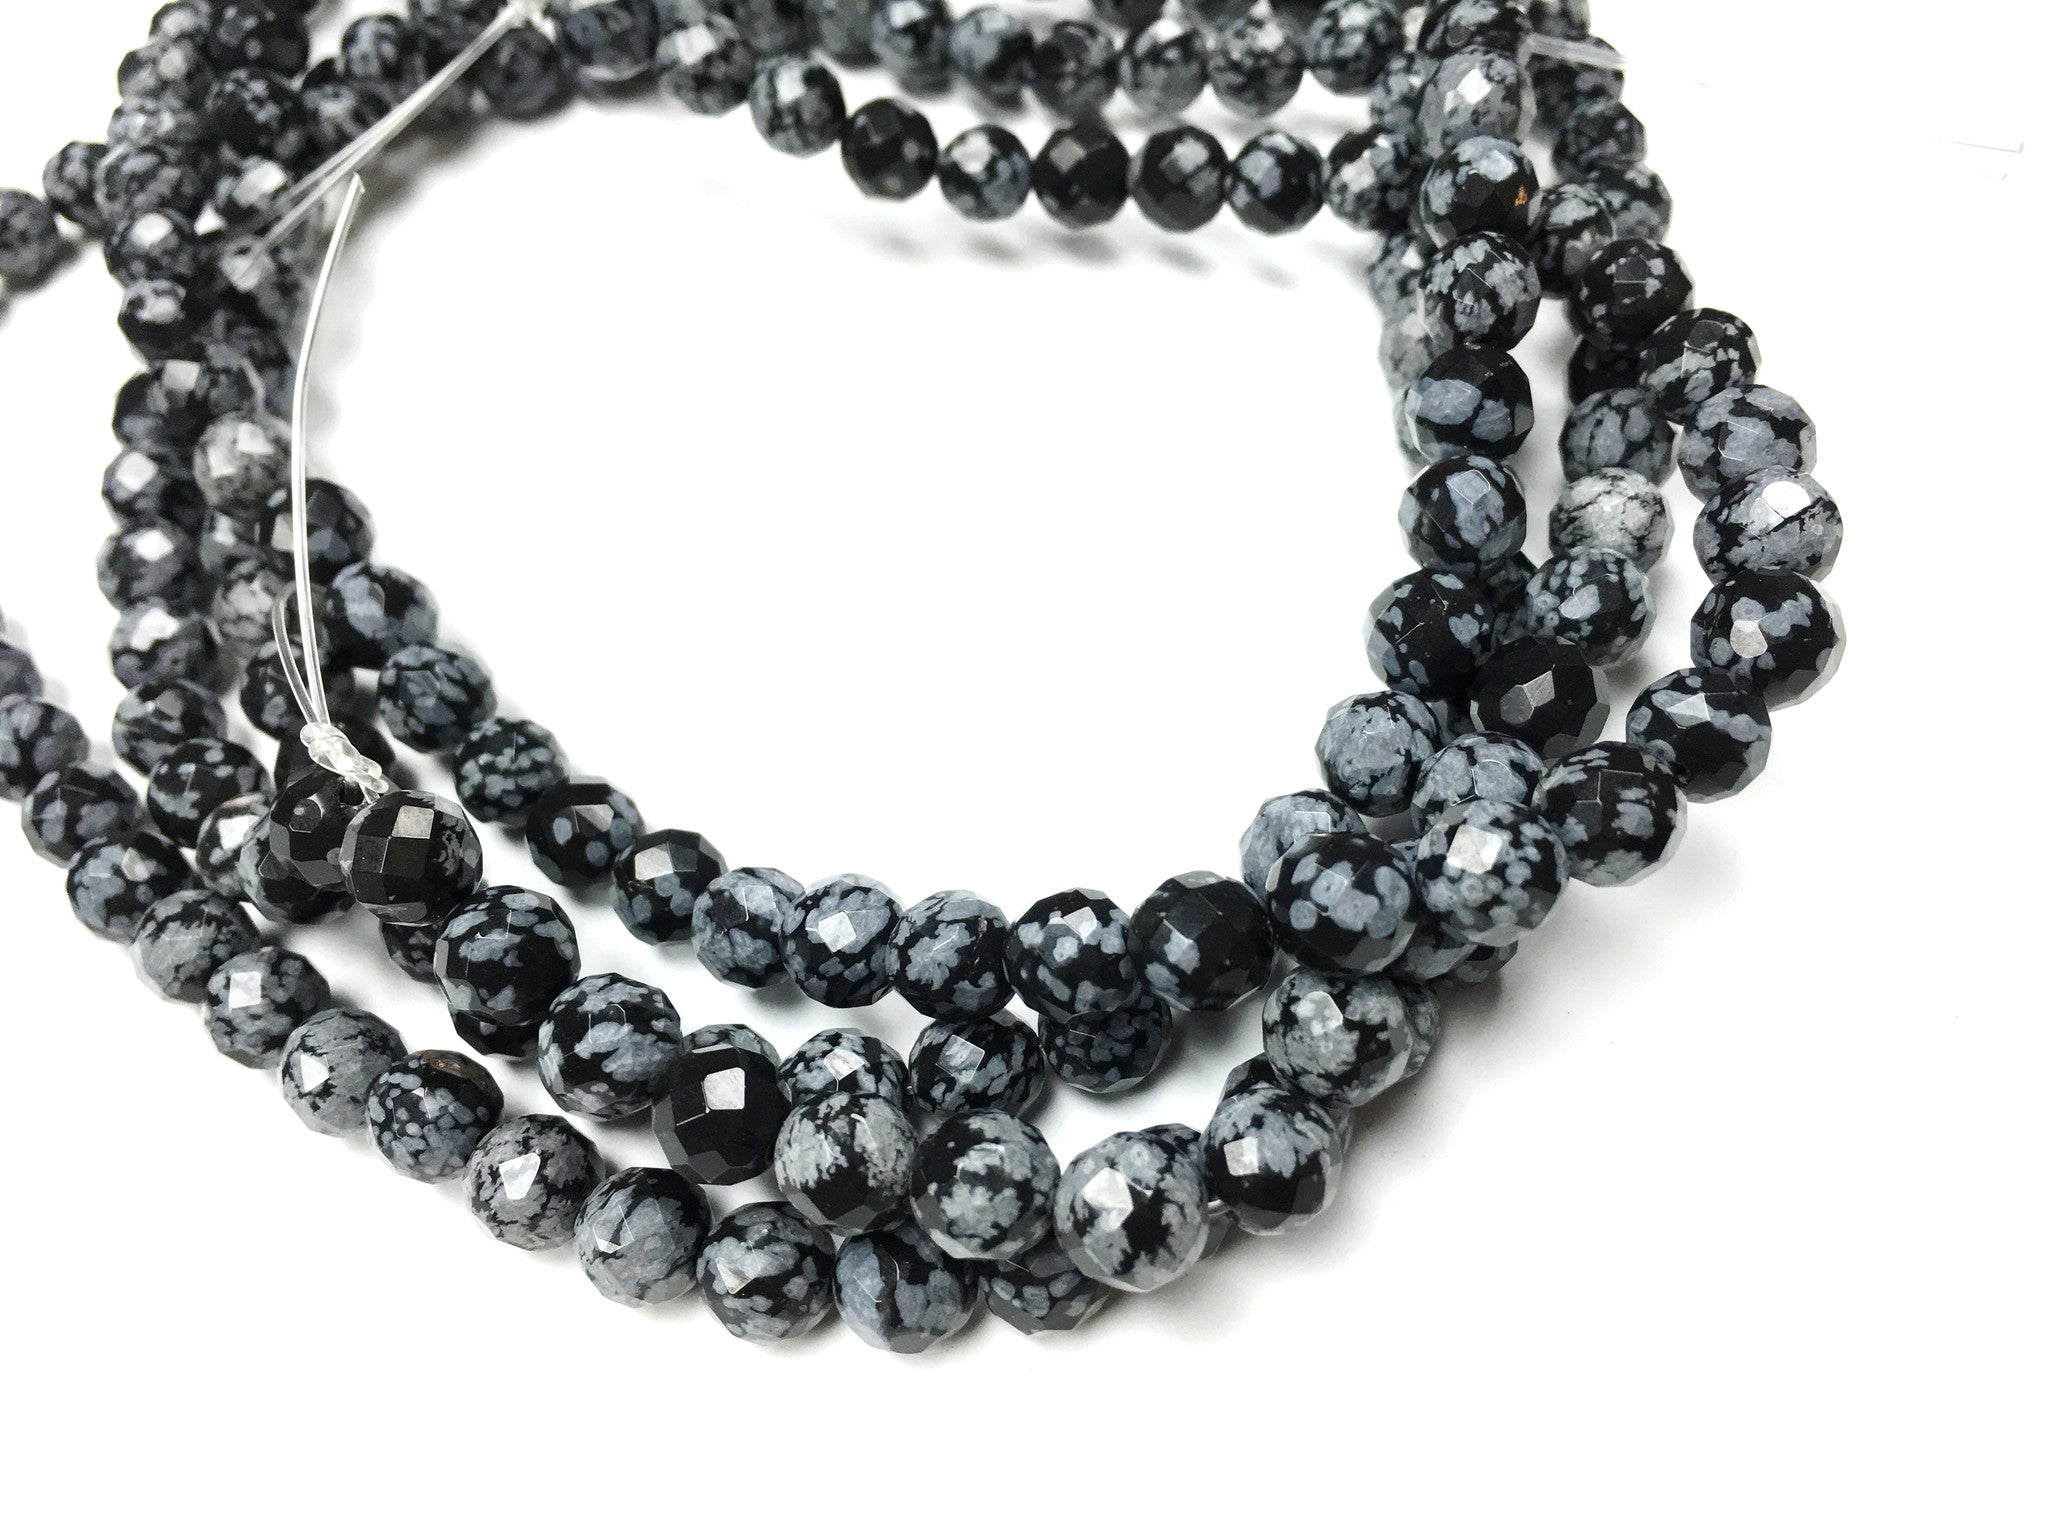 A&SB Stone - Round Stone - Faceted Snowflake Obsidian - 8mm 49 pcs